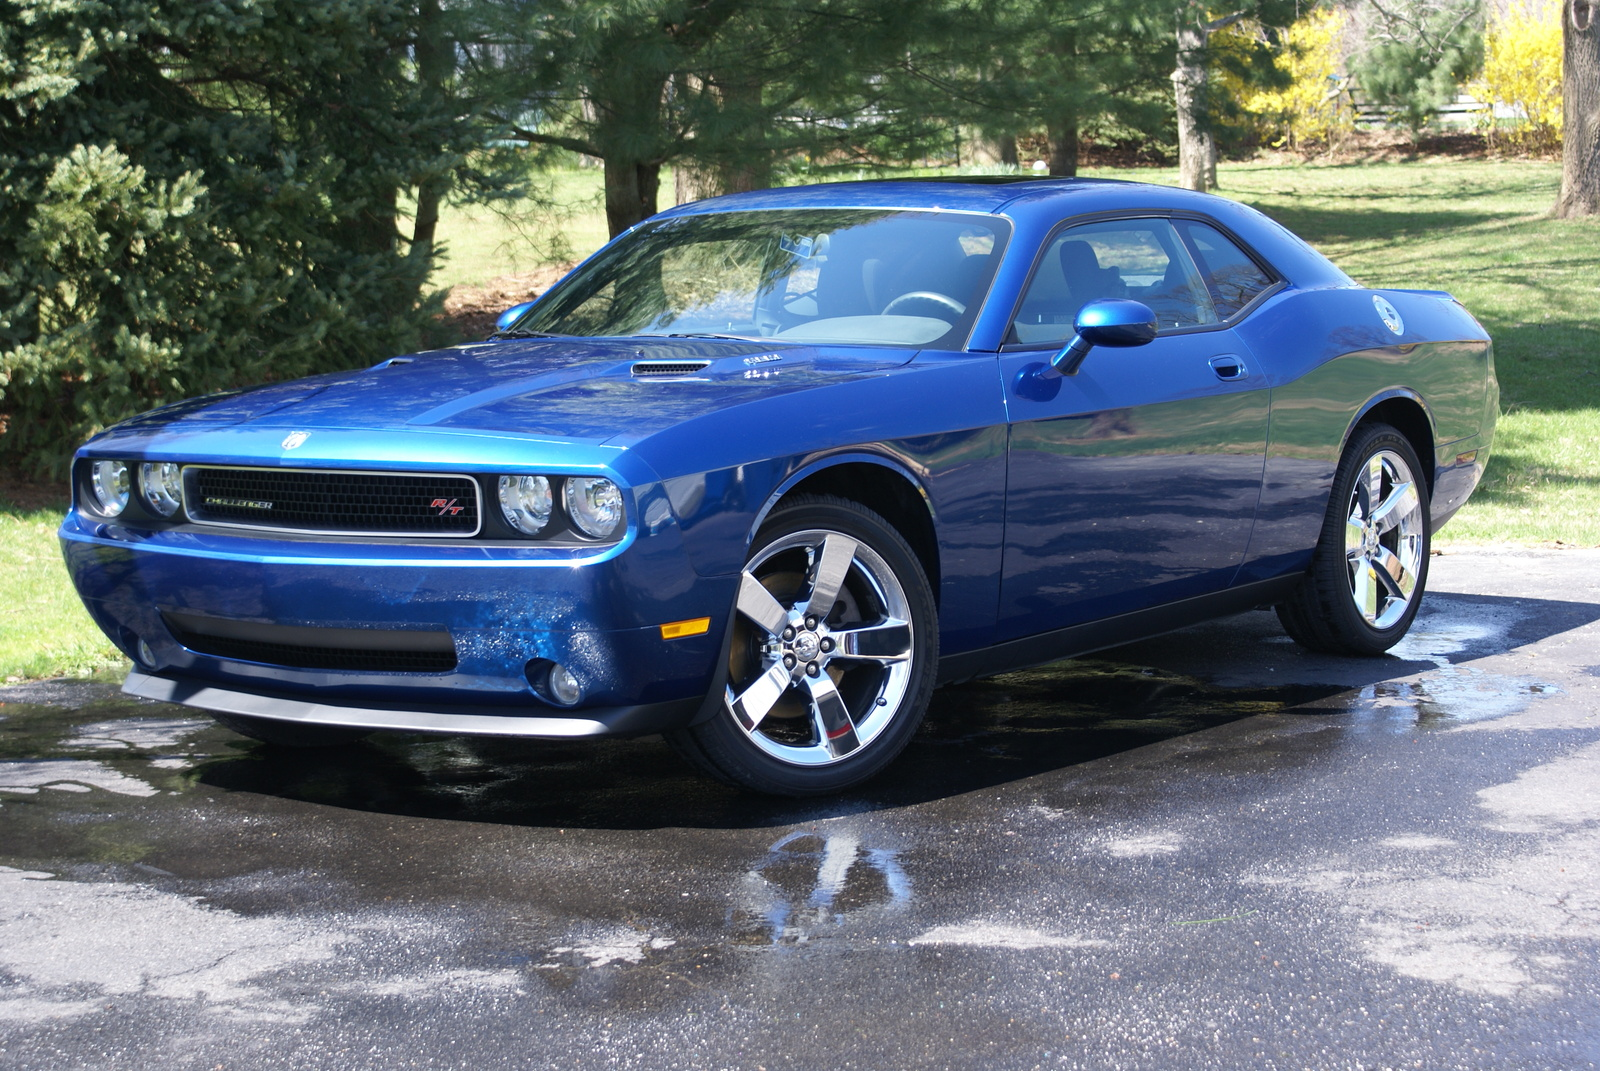 2009 dodge challenger rt classic wallpapers driverlayer search engine. Black Bedroom Furniture Sets. Home Design Ideas